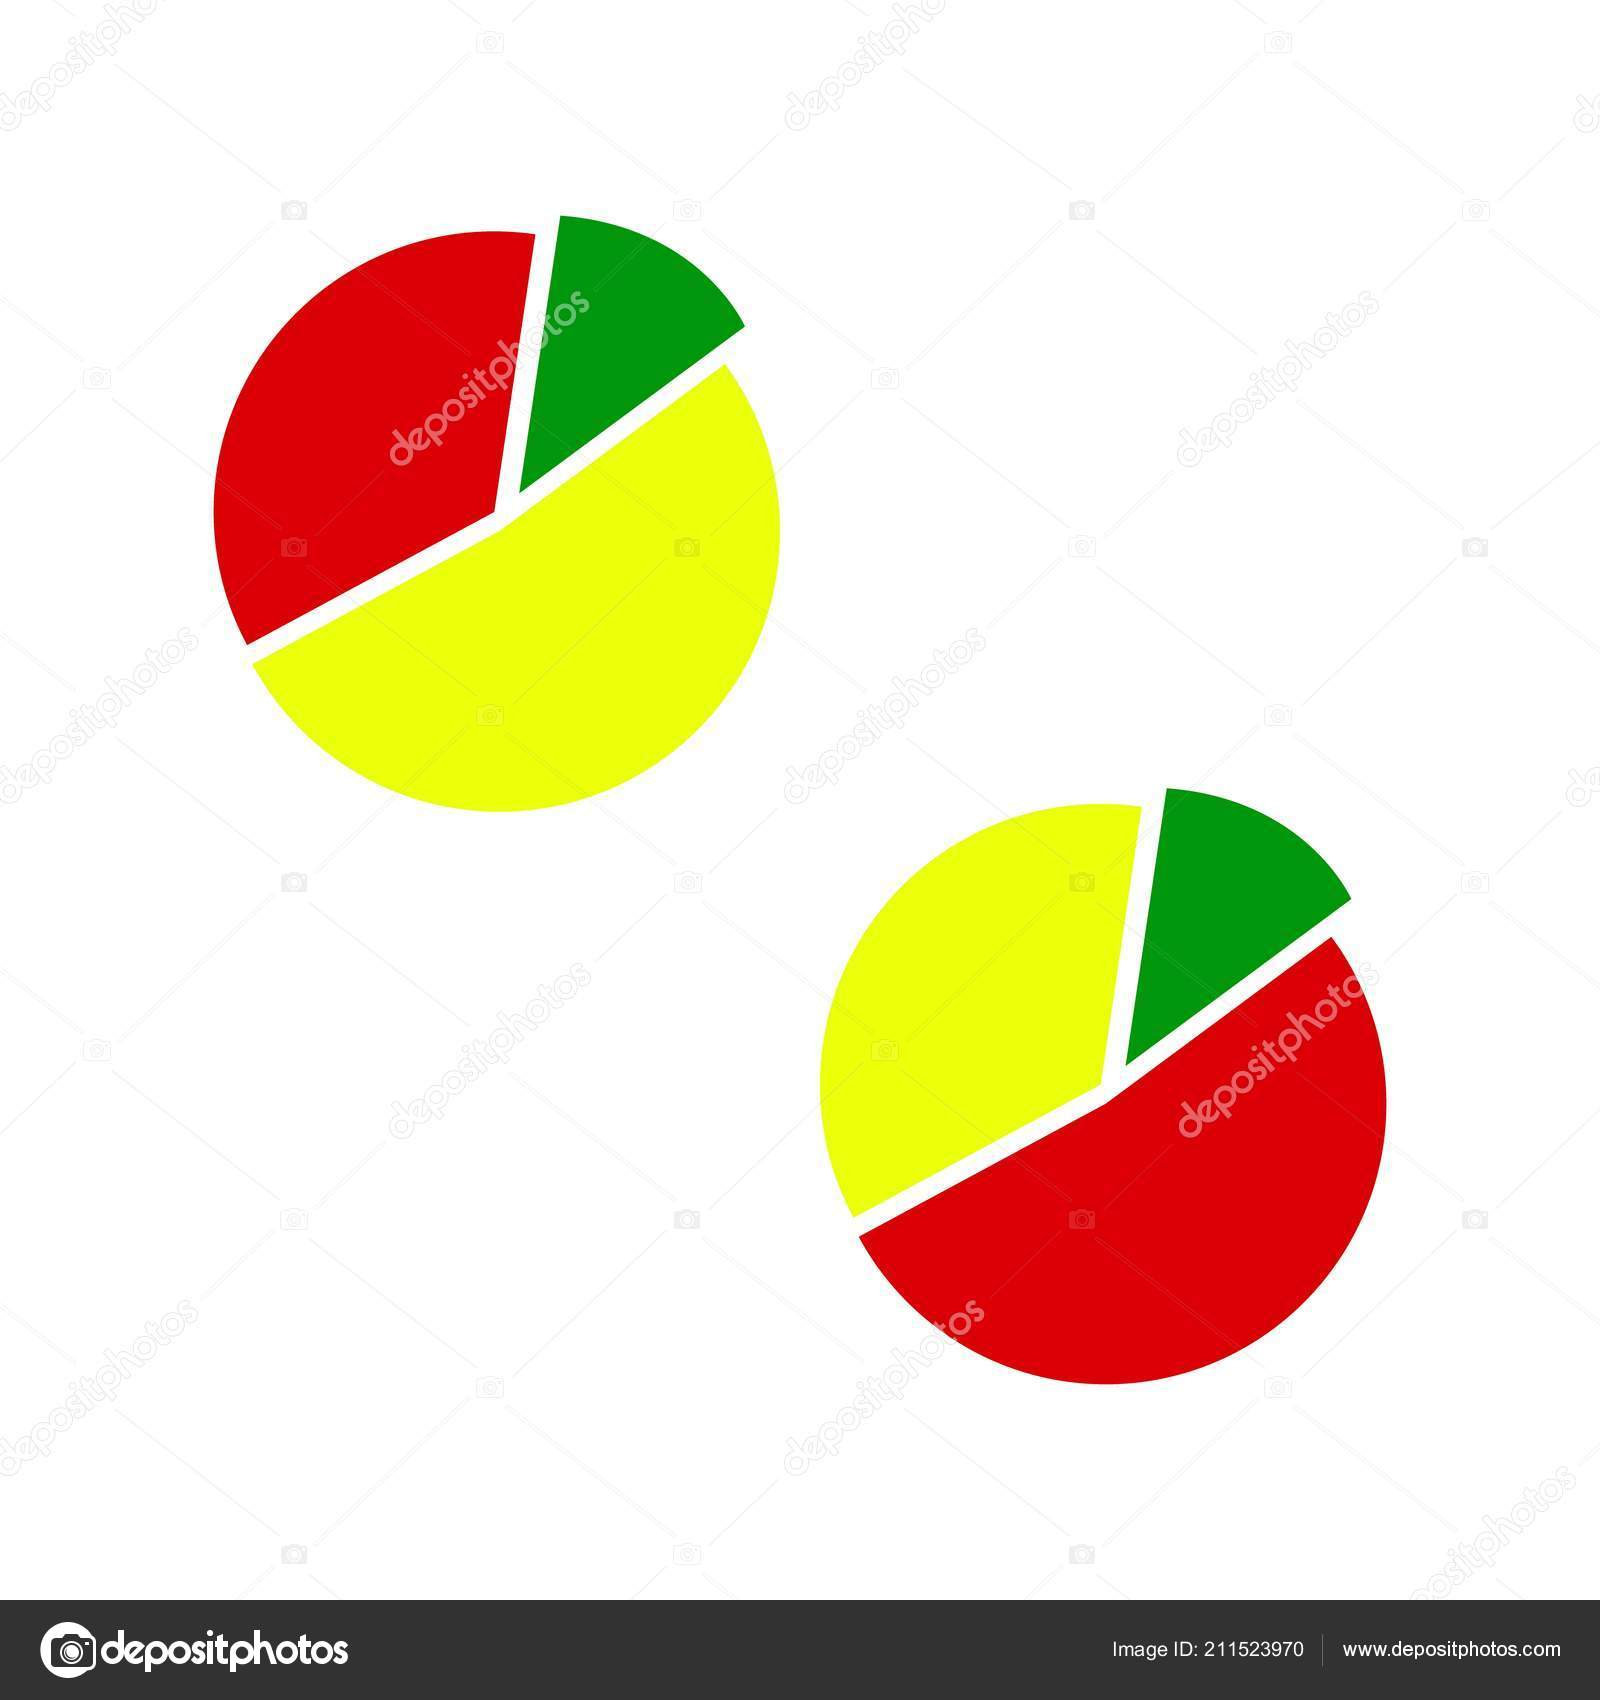 Bulk of diagram icons for finance info stock vector bulk of diagram icons for finance info stock vector ccuart Choice Image